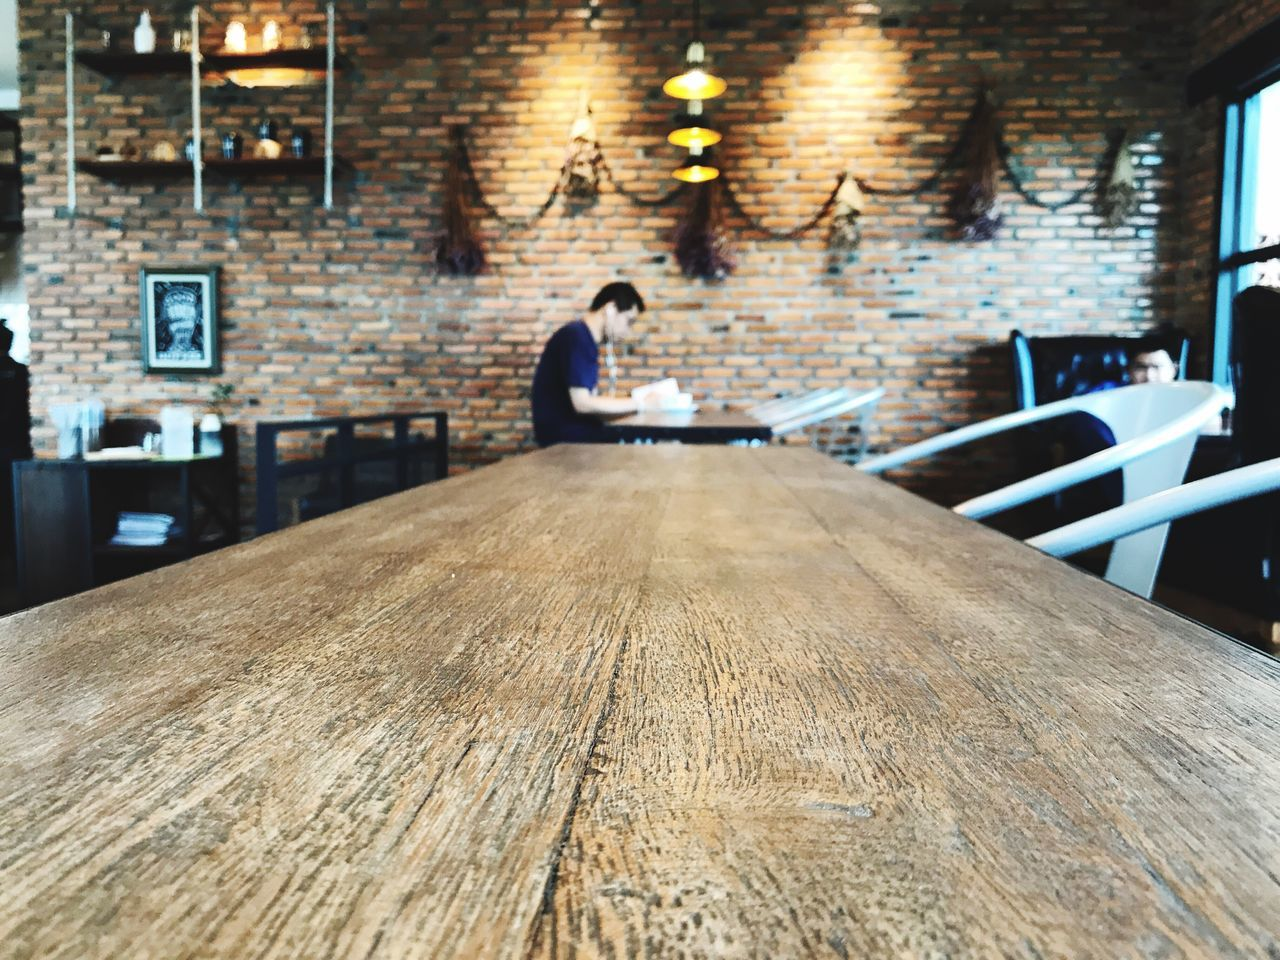 table, indoors, real people, wood - material, sitting, one person, chair, desk, cafe, illuminated, bar - drink establishment, lifestyles, women, day, architecture, people